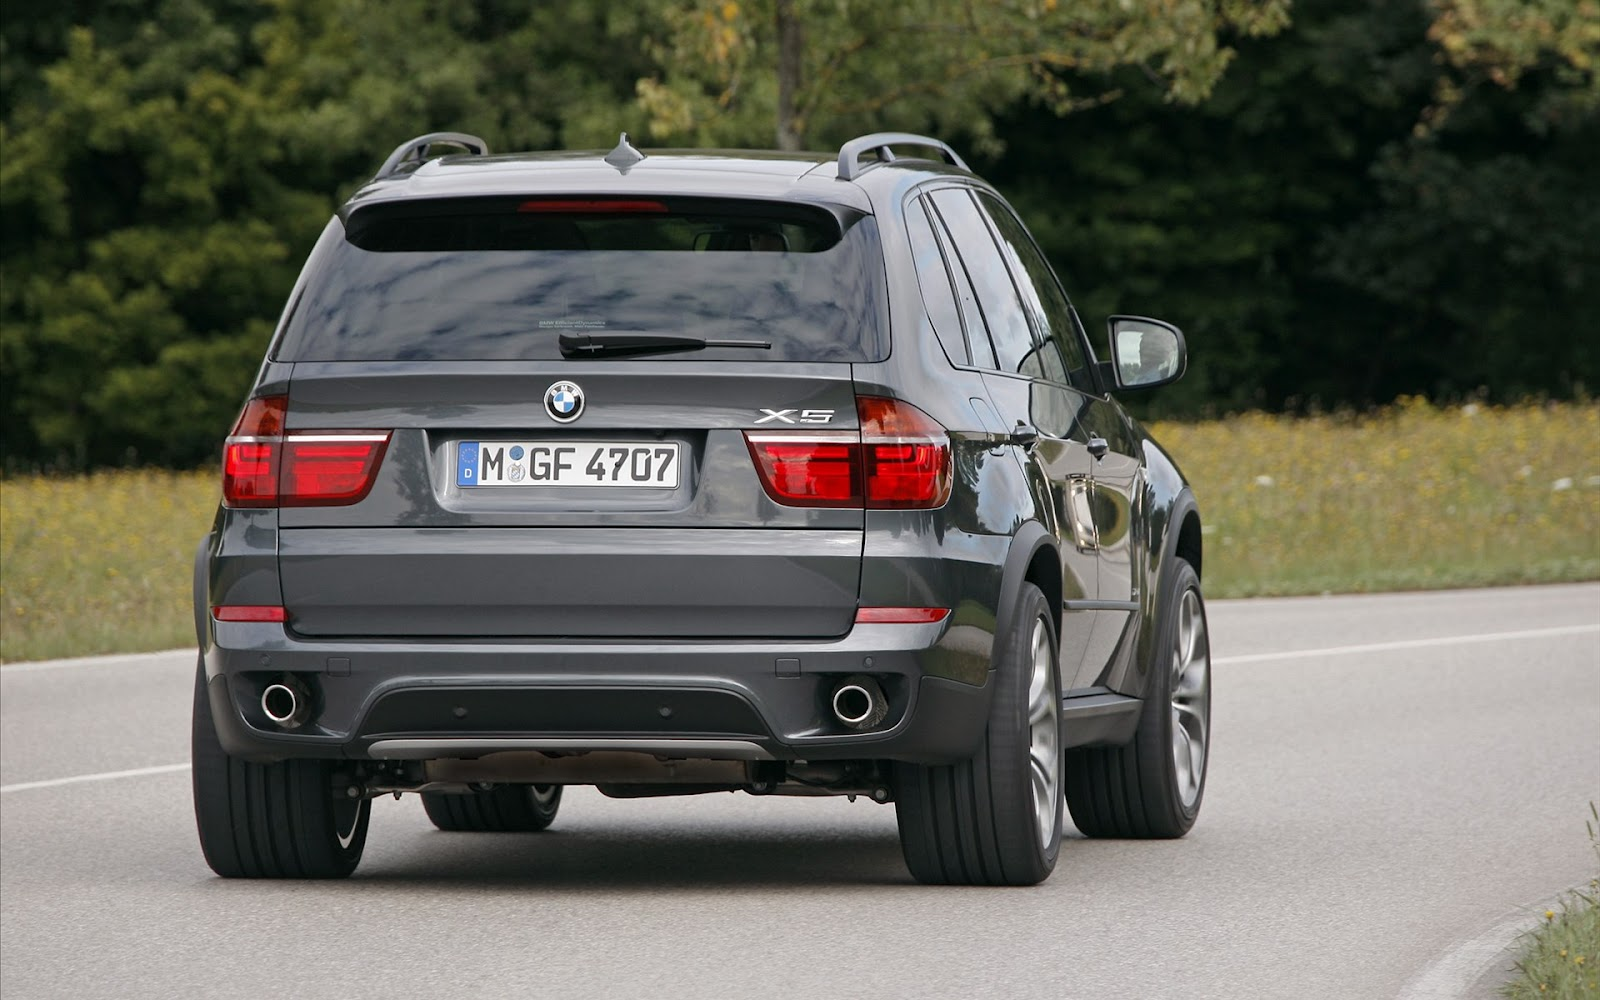 Bmw x5 2012 hd wallpapers 2012 2013 el clasico latttes ball voltagebd Image collections